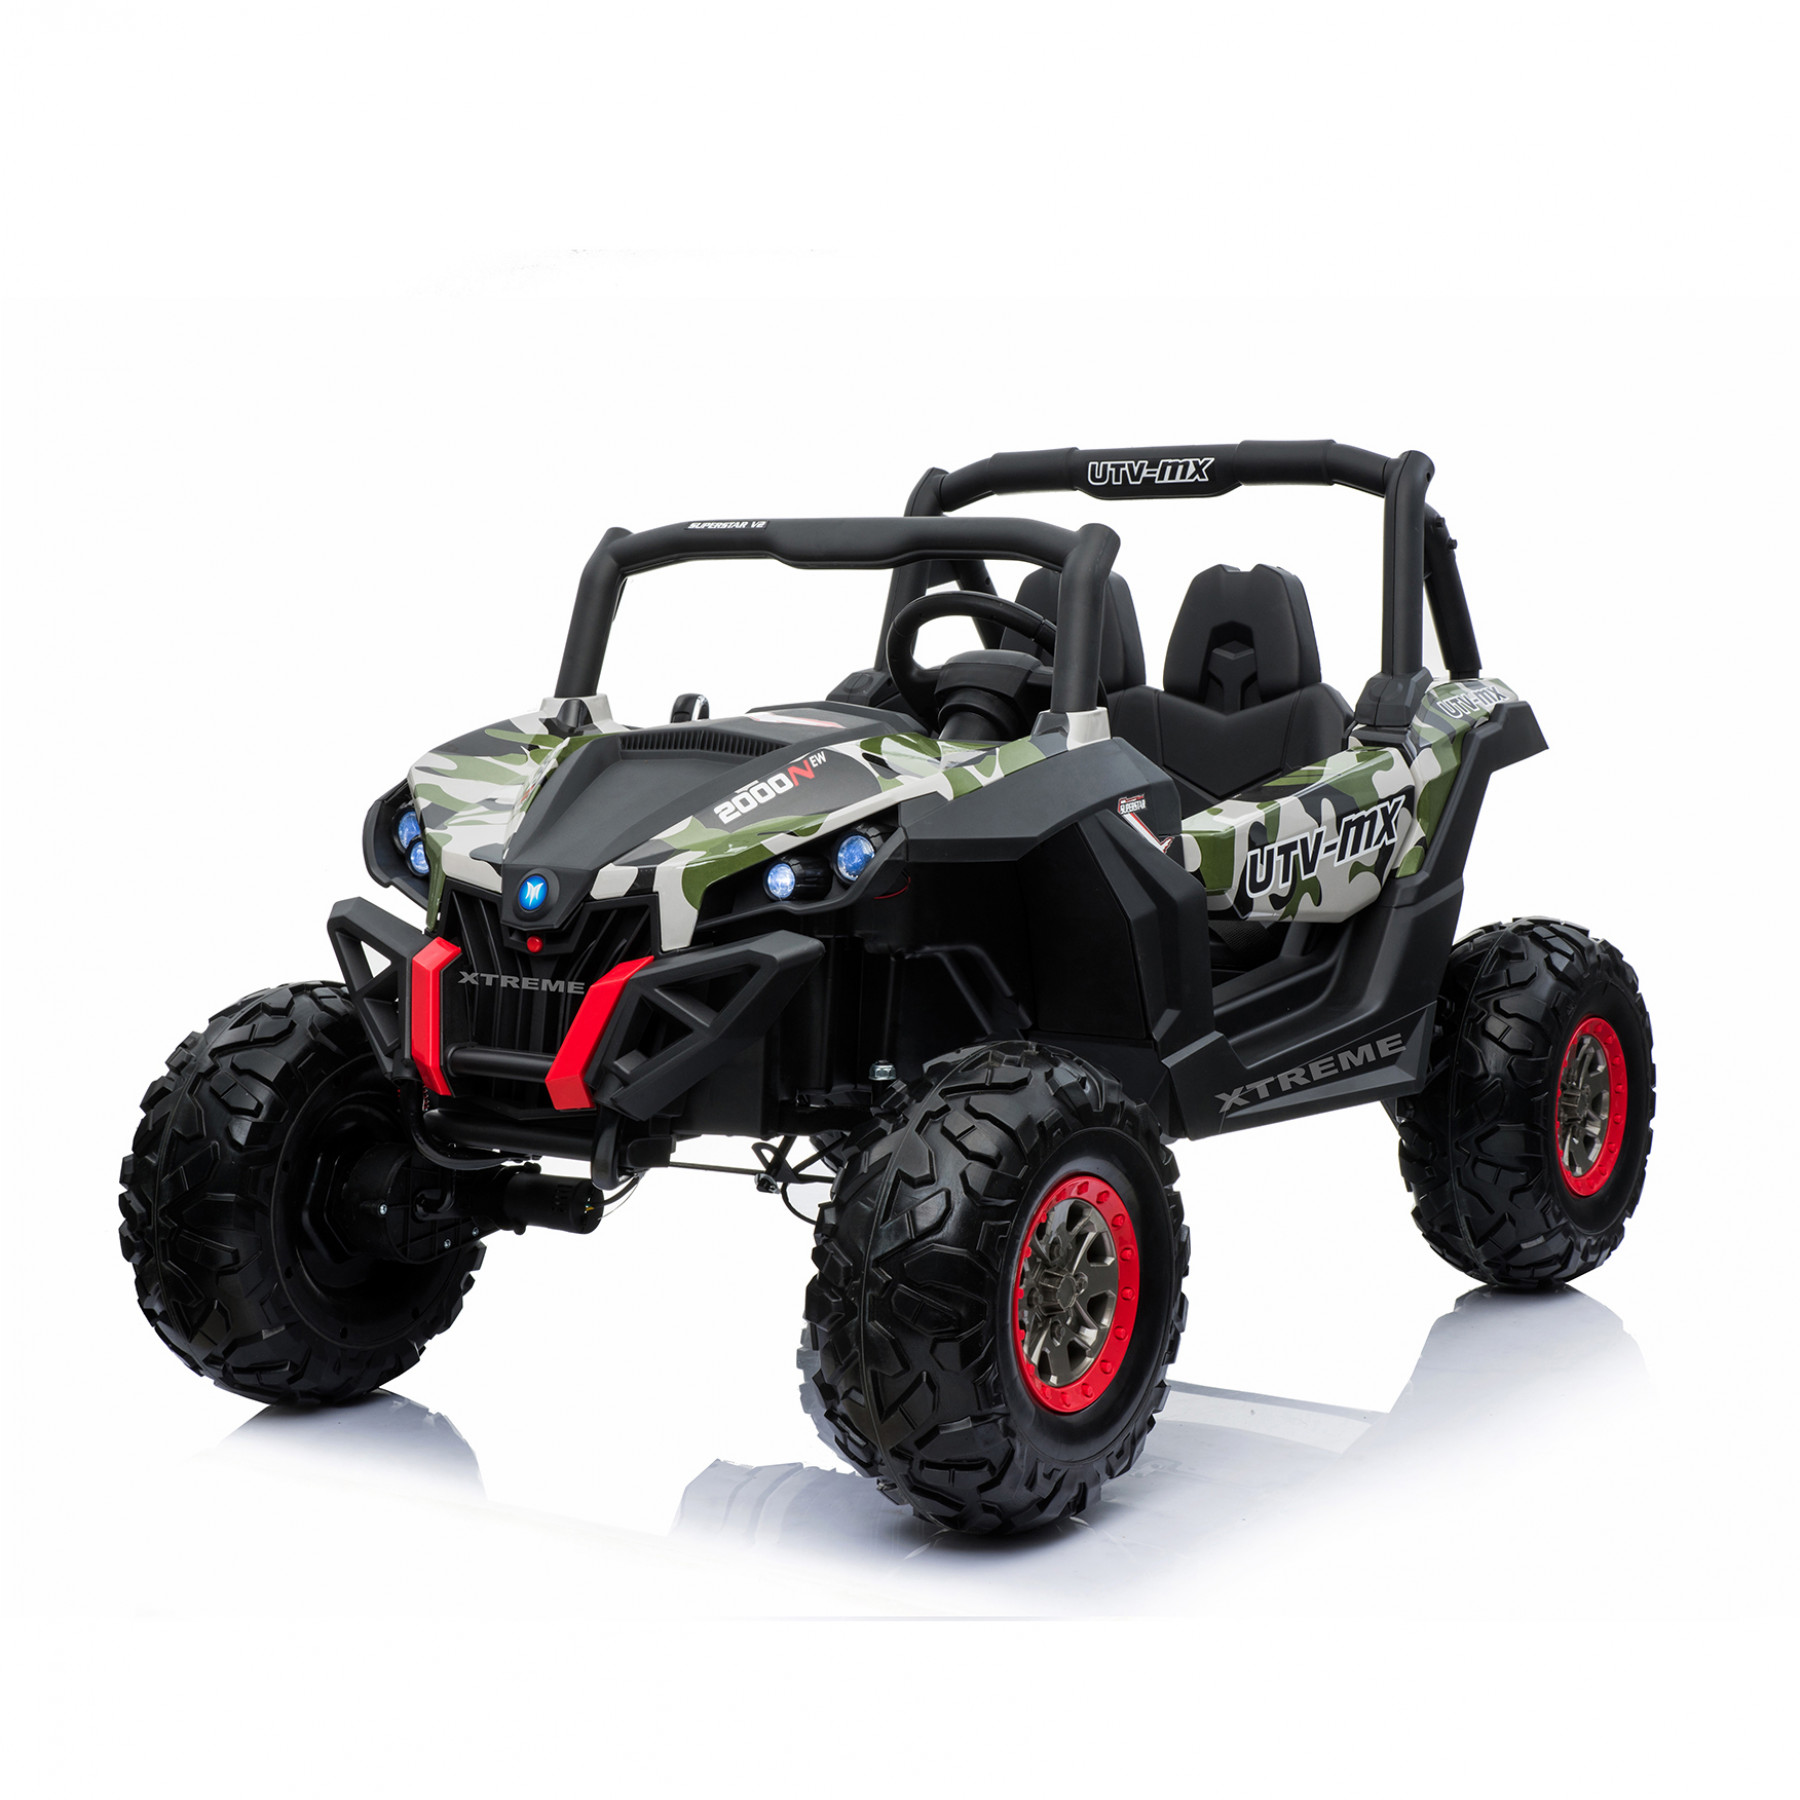 Xtreme 2018 BIG 24v Ride on 4x4 Jeep Camouflage Green